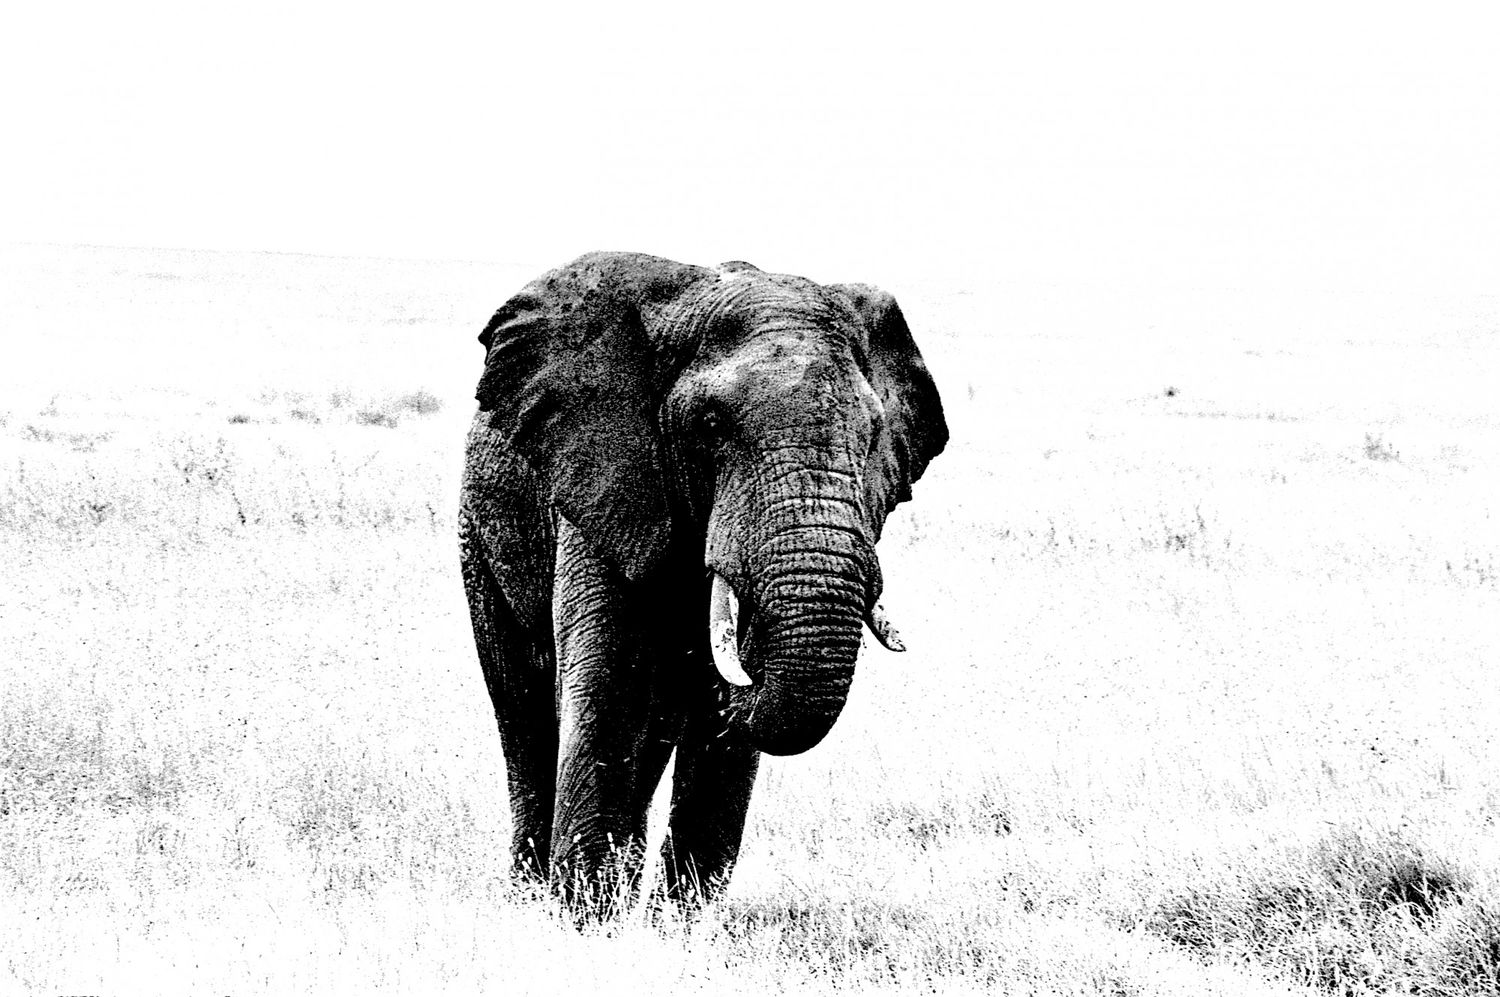 Elephant - 7, Serengeti 2016   Edition 1 of 2